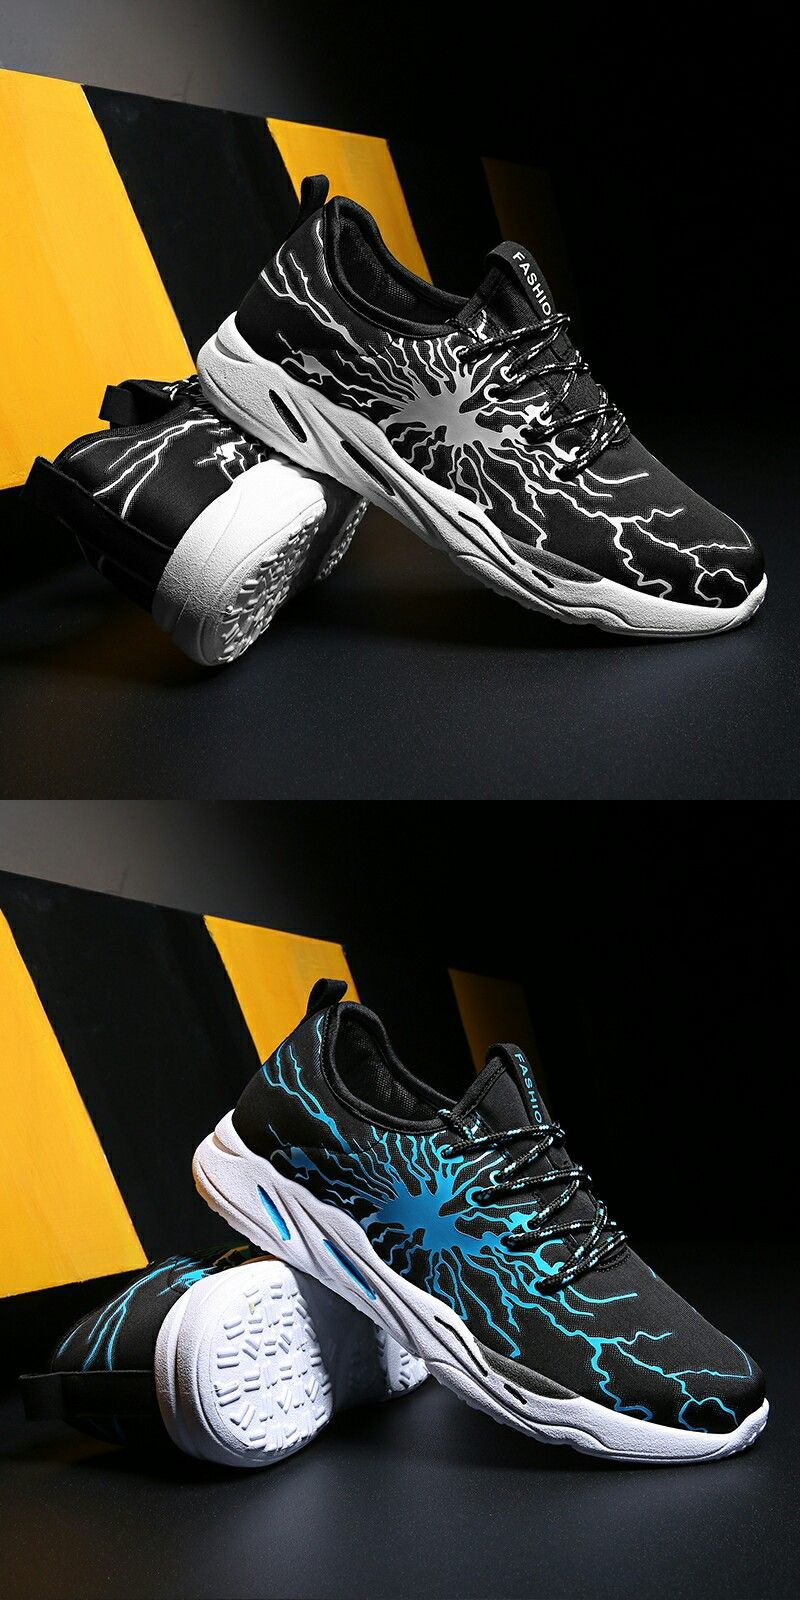 reputable site b6756 0bd91 US  22.66  Click to buy  Prikol Cool Design Lace-up Height Increasing Shoe  Comfortable Sports Outdoor Running Shoes Calcado Masculino Adulto